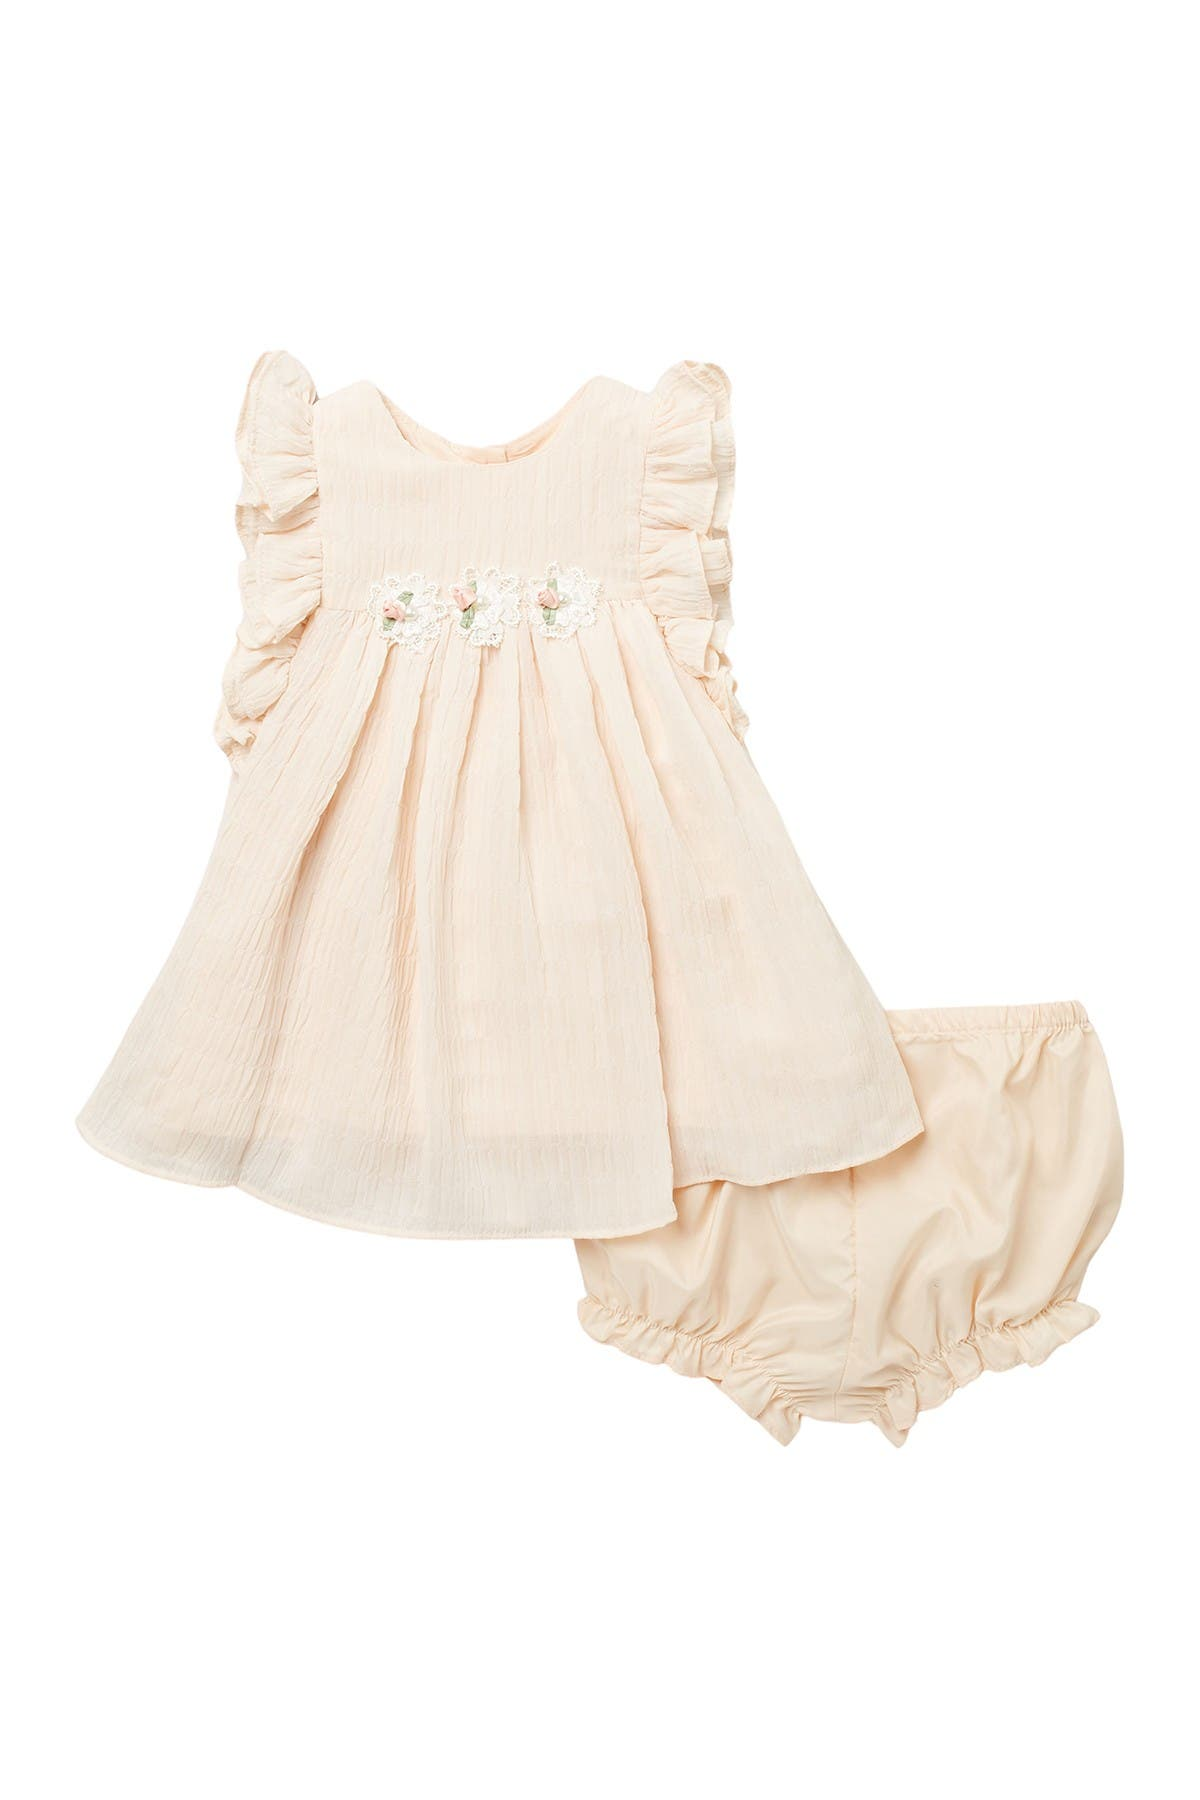 Image of Laura Ashley Chiffon Dress & Bloomer Set